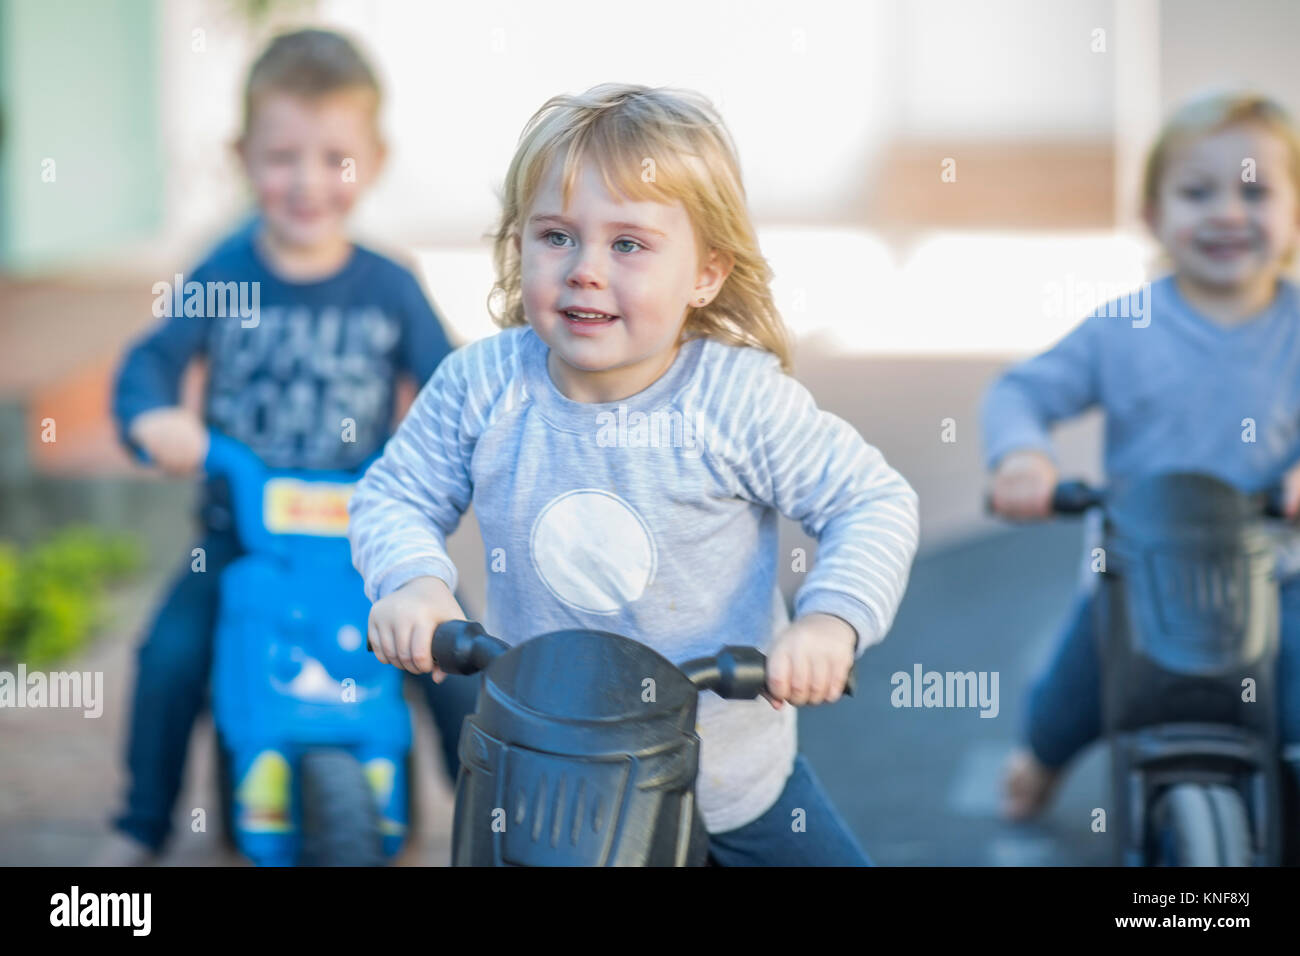 Girl and boys at preschool, racing push motorbikes in garden - Stock Image